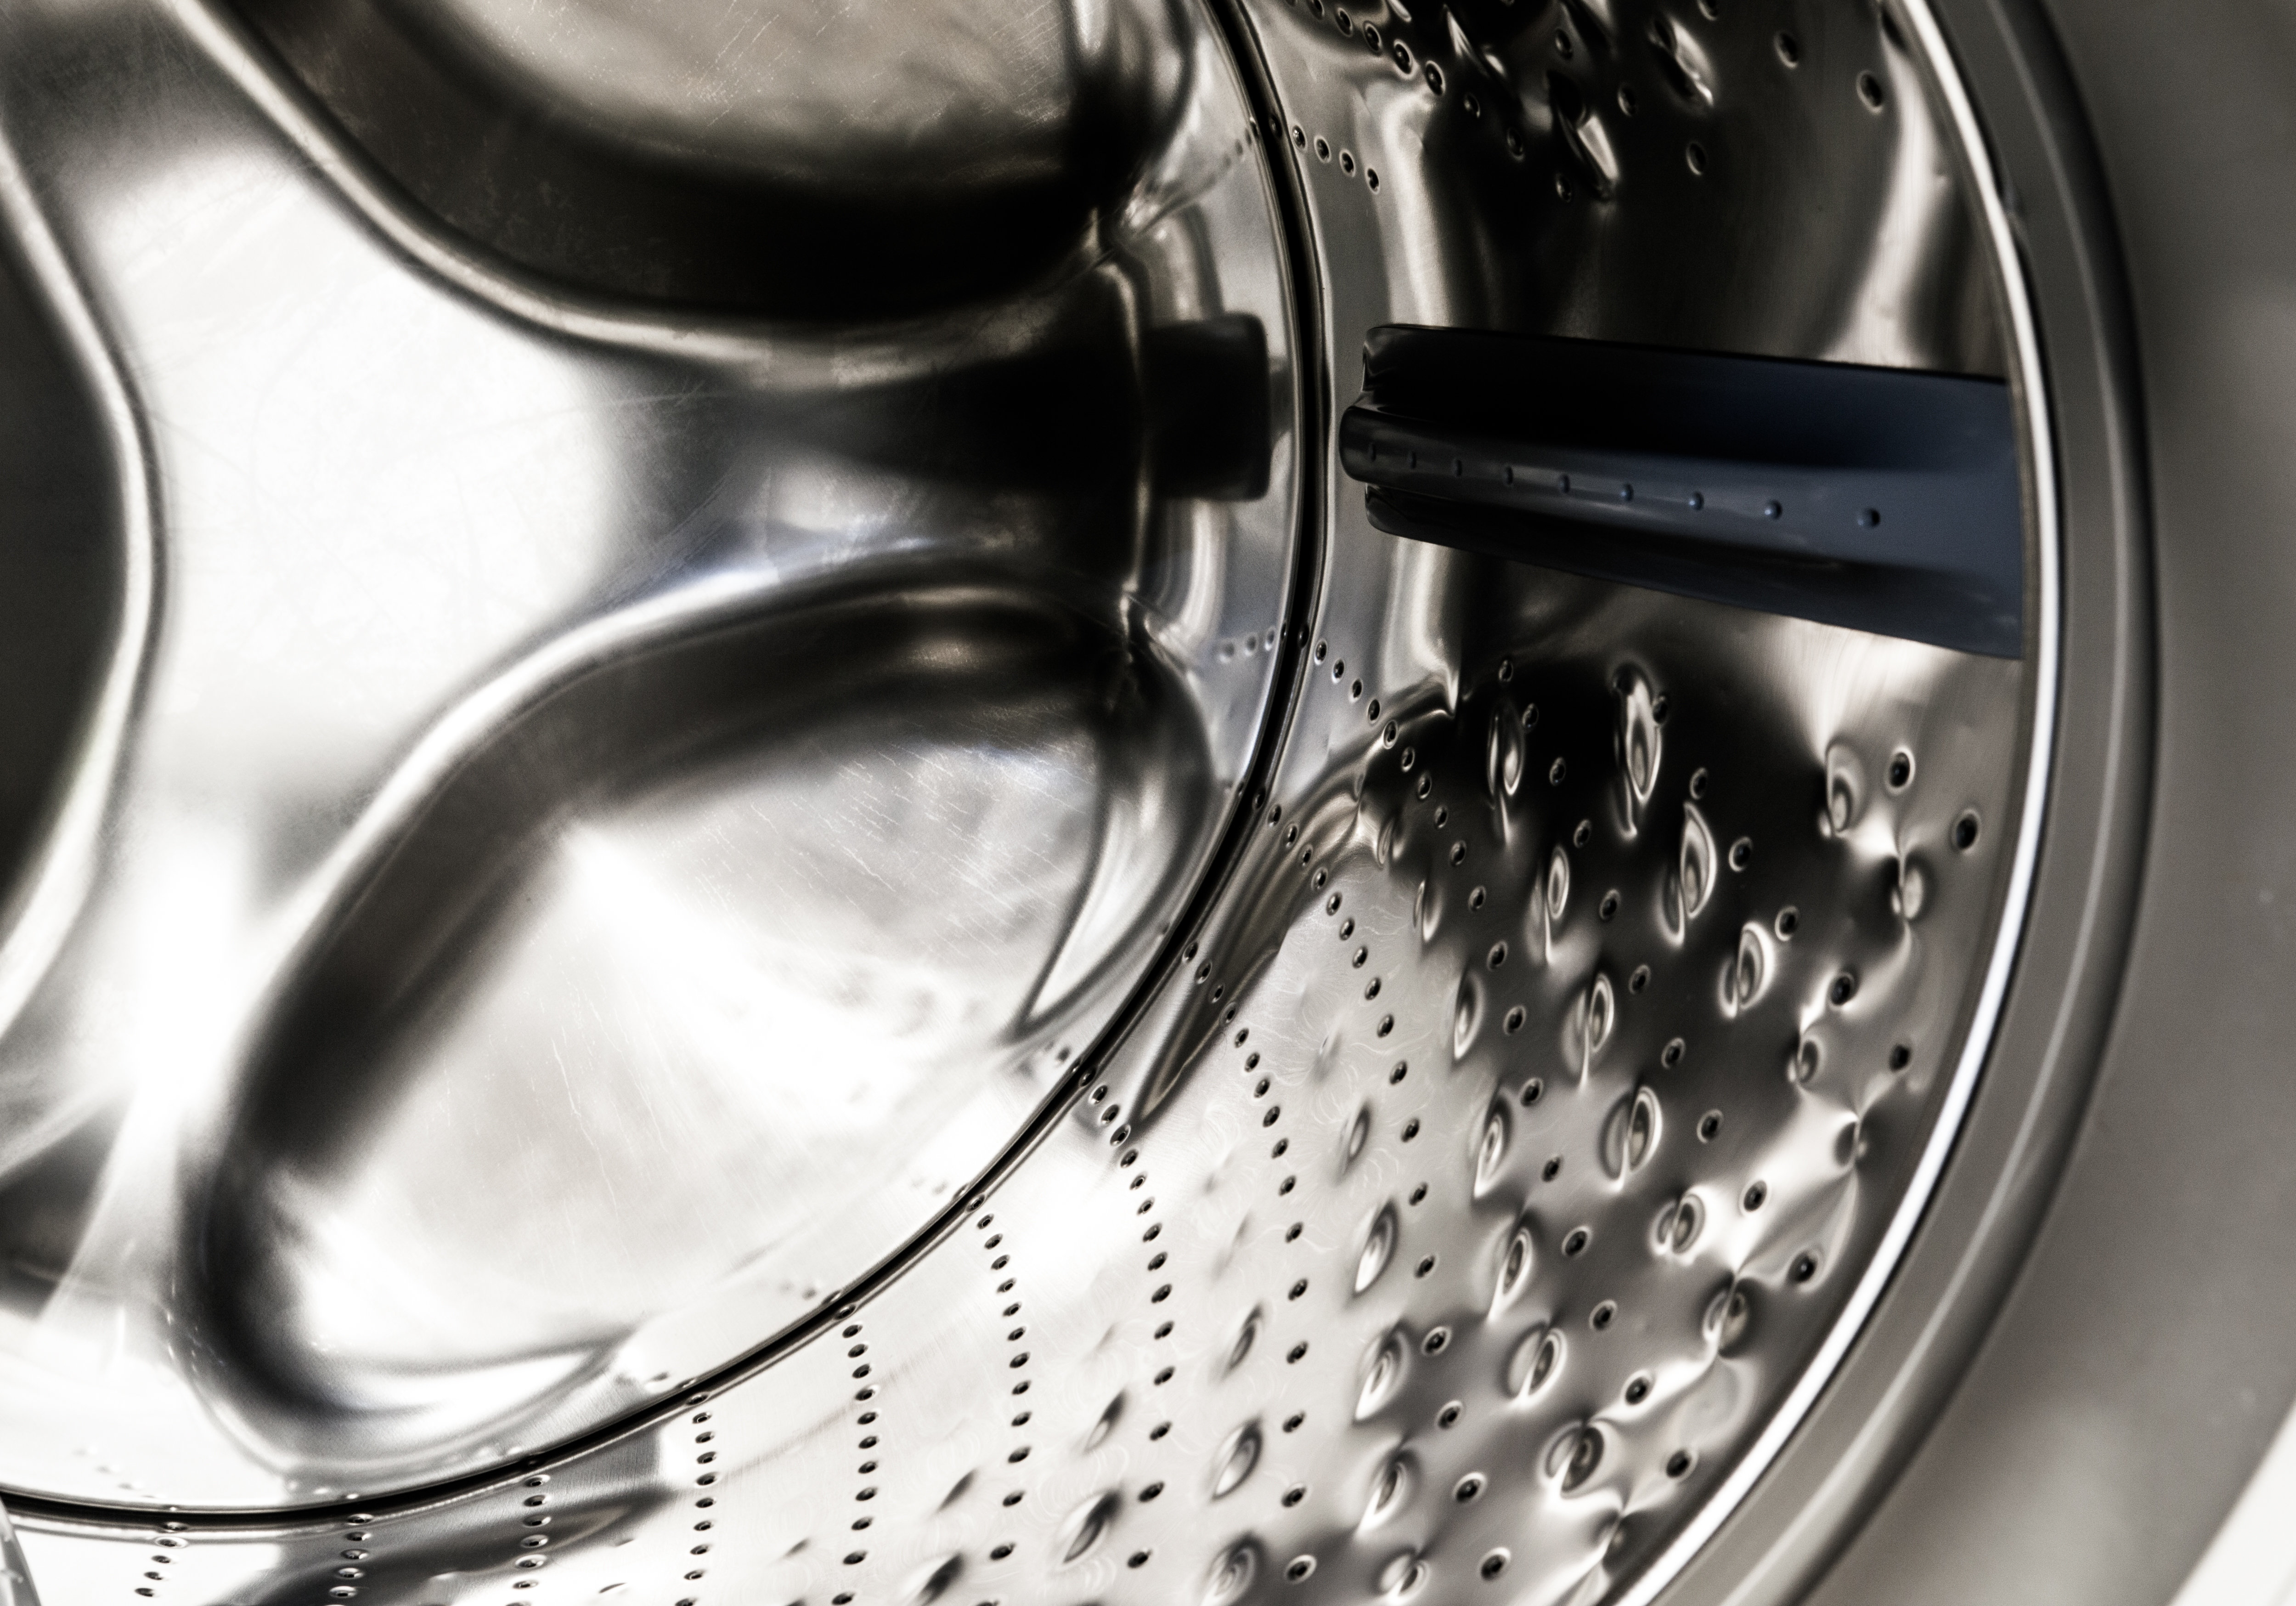 The 4.3-cu.-ft. drum is lined with steel bubbles that help wash your clothes without tearing them to shreds. This drums is covered under a 10-year warranty.